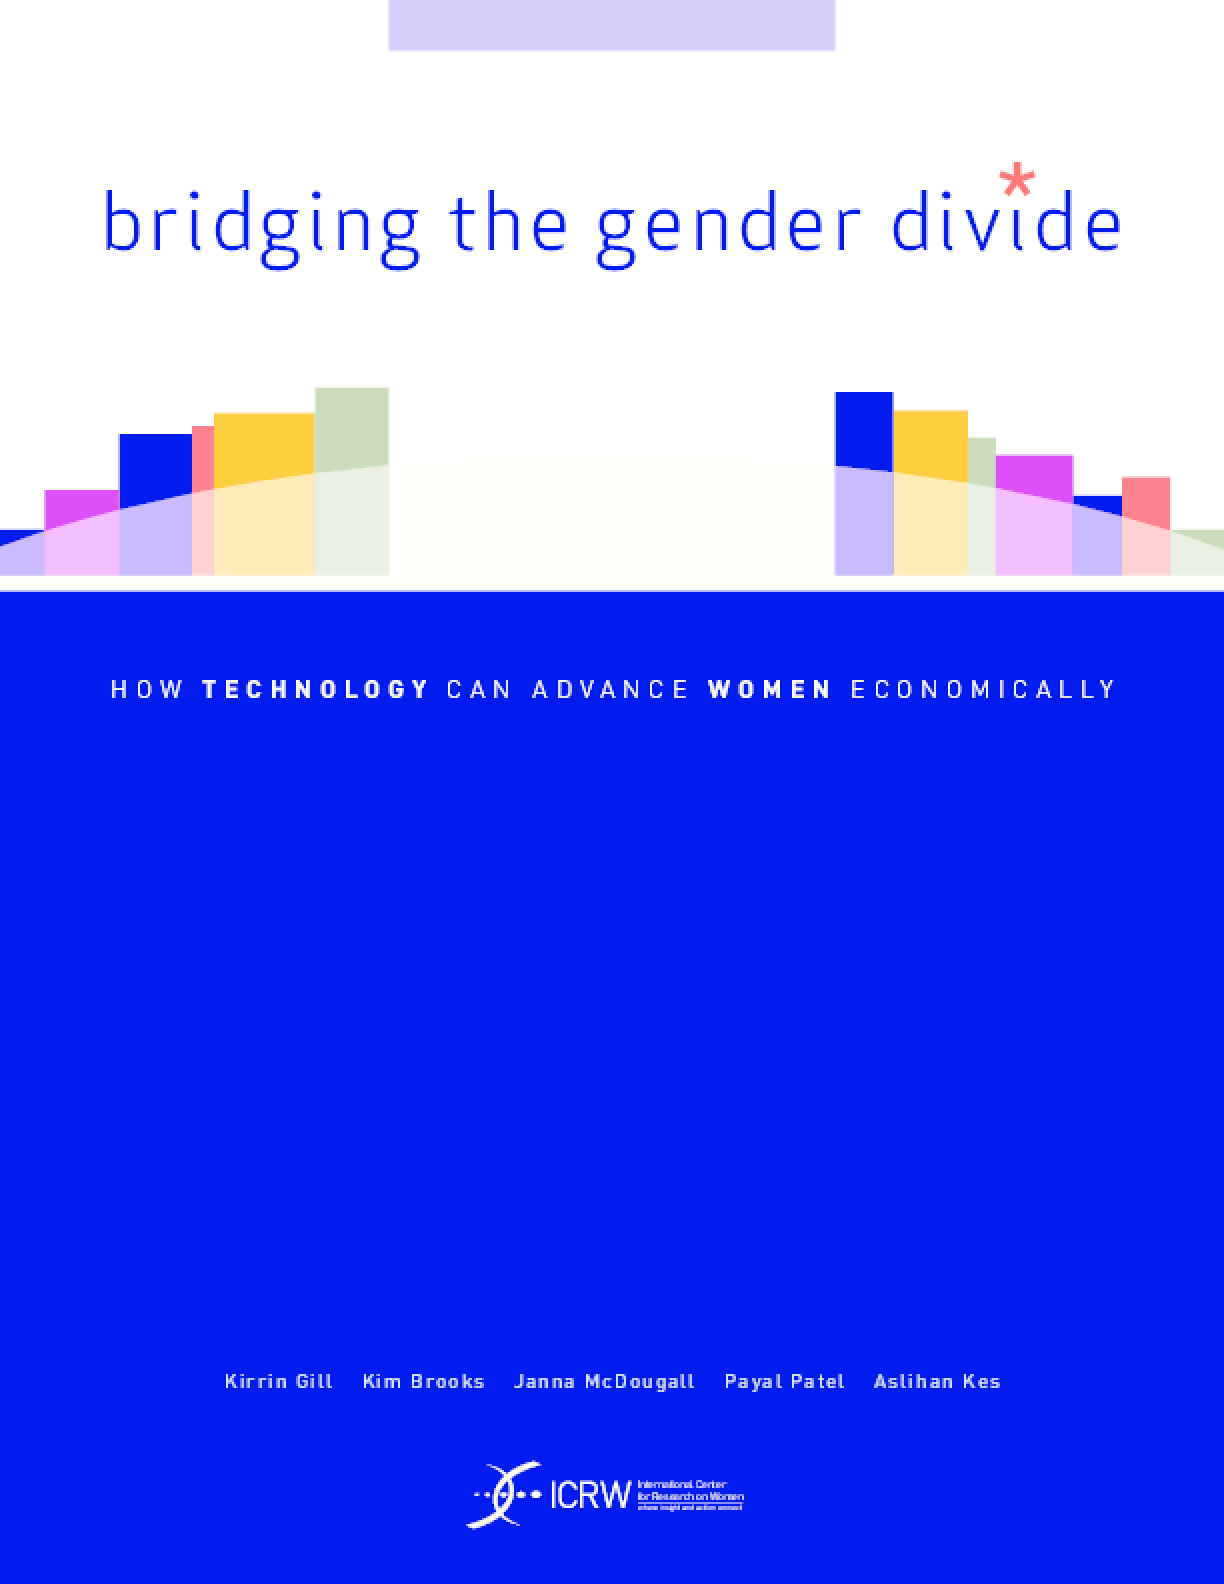 Bridging the Gender Divide: How Technology Can Advance Women Economically